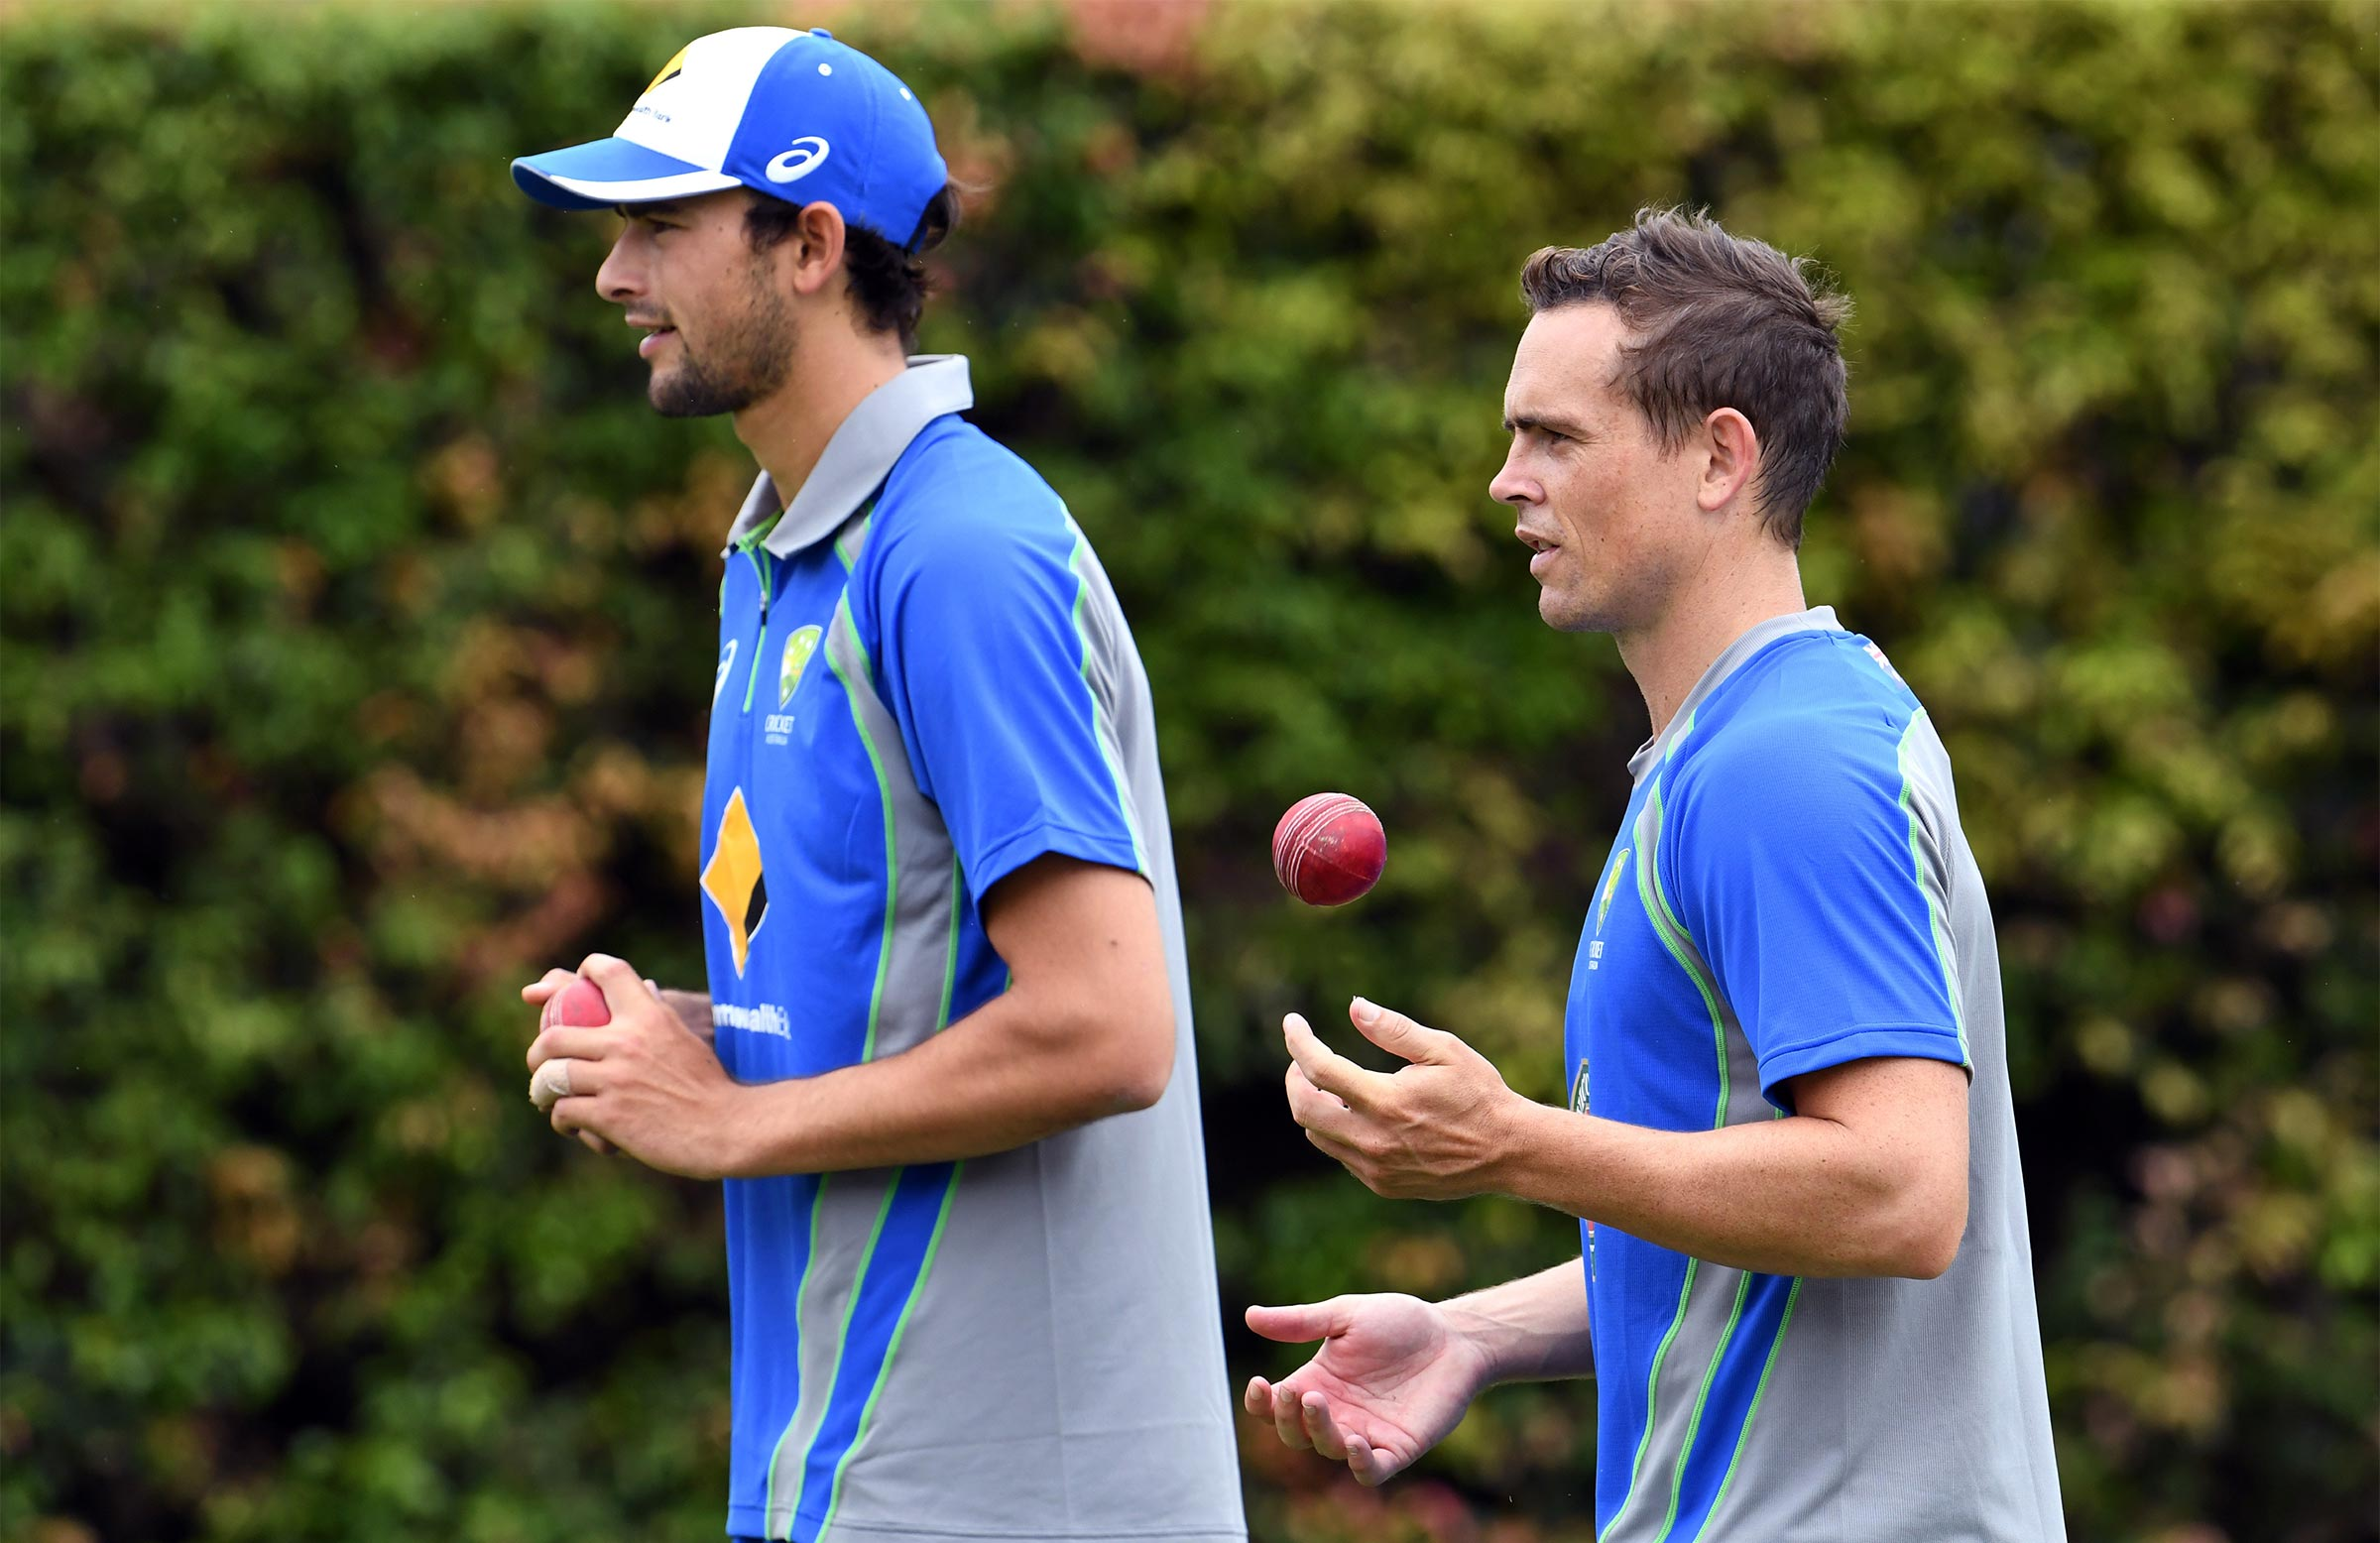 Australia selectors name squad for Bangladesh tour, Mitchell Starc omitted